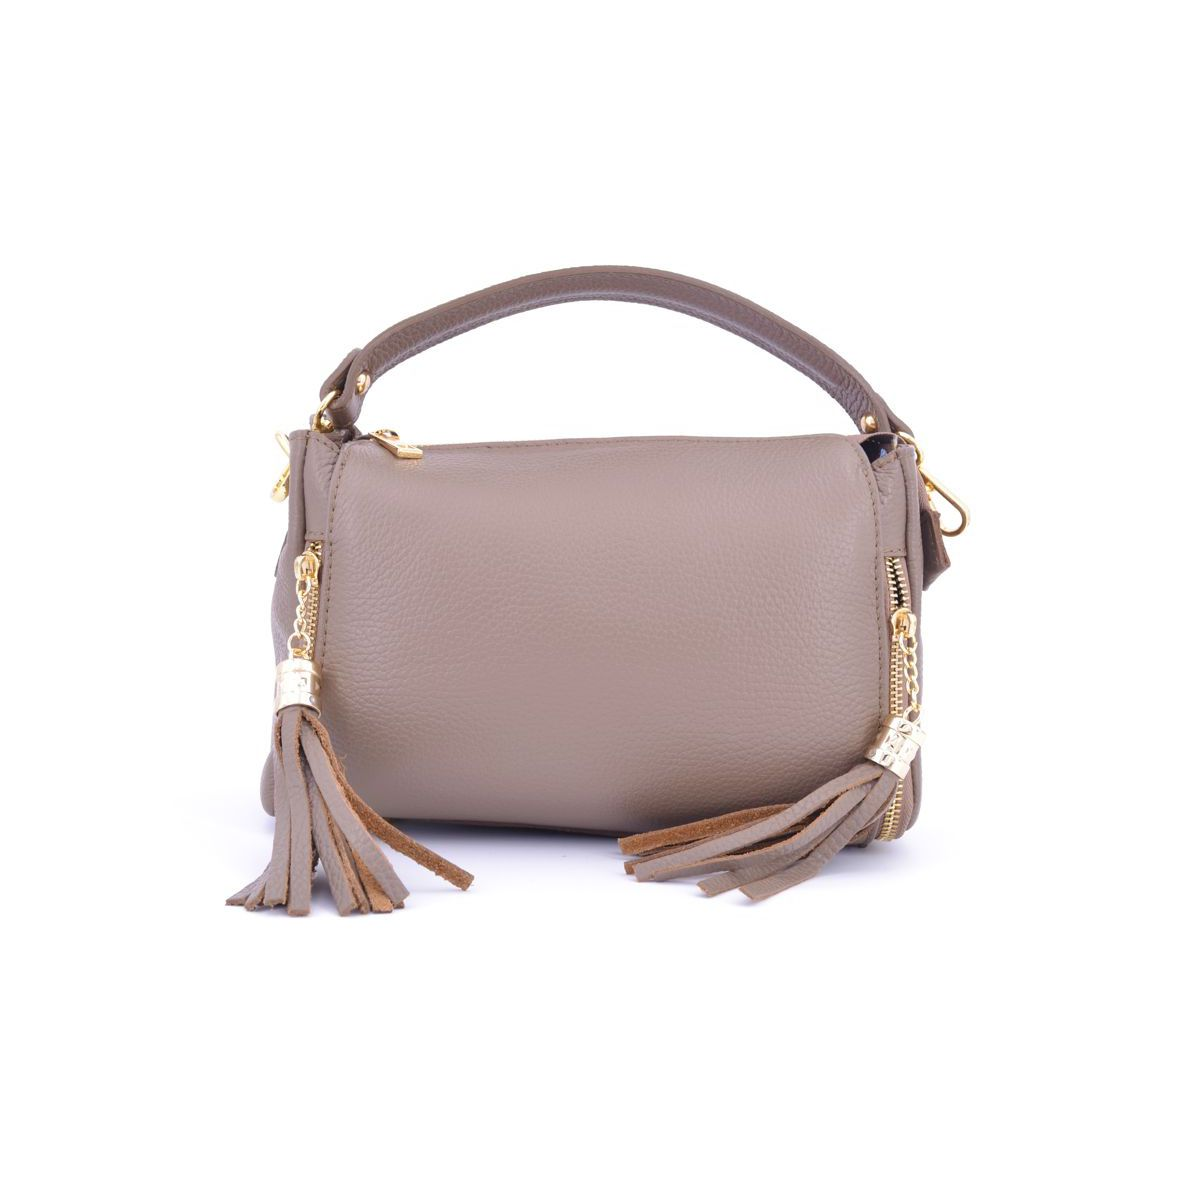 NASSELS BAG Taupe BRASS Selection